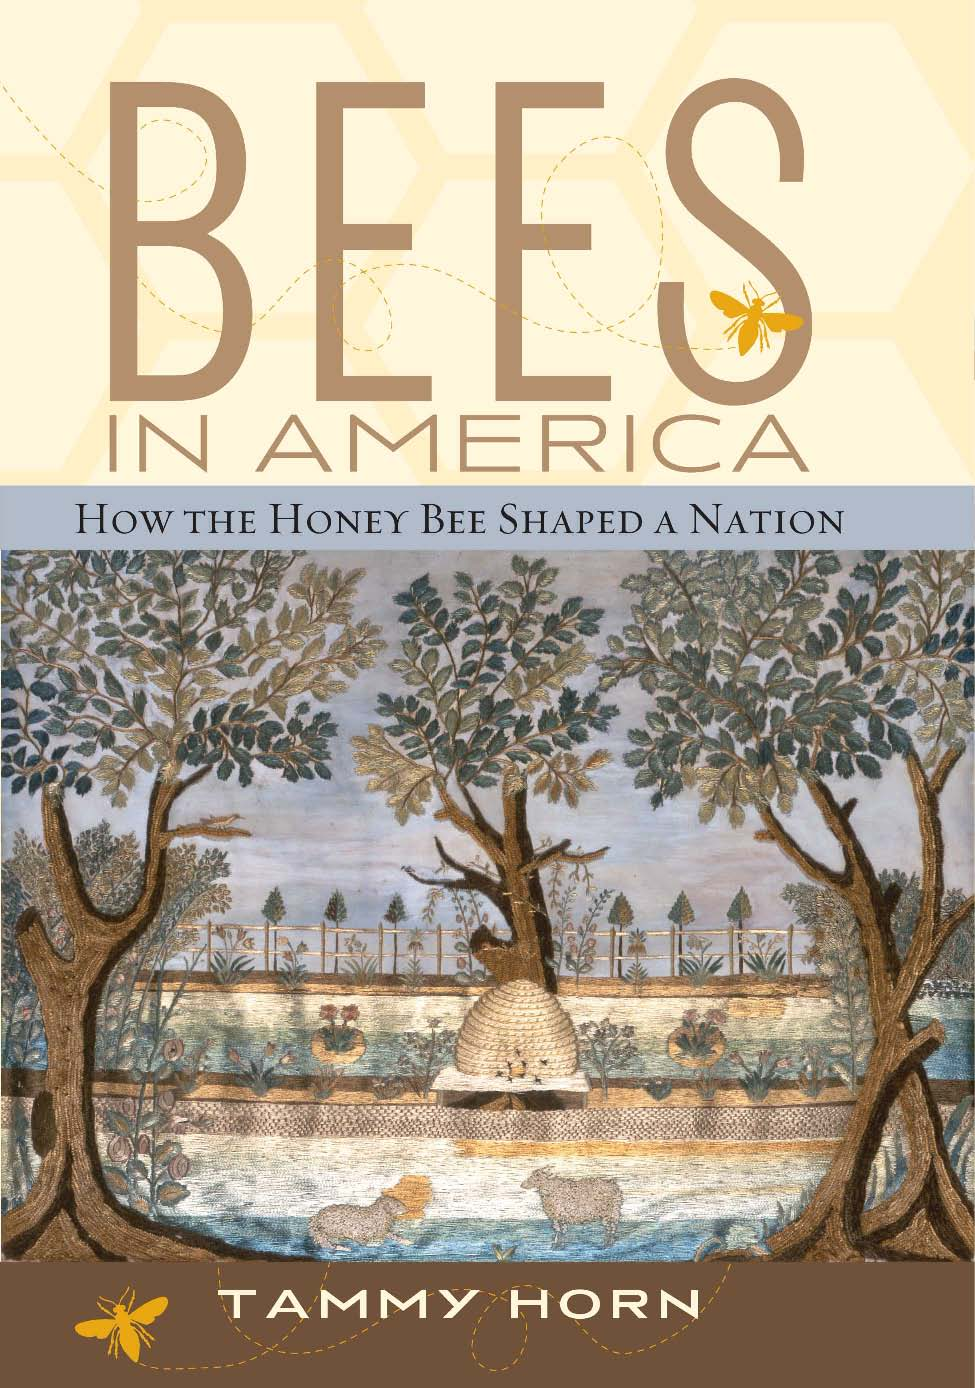 Bees in America: How the Honey Bee Shaped a Nation